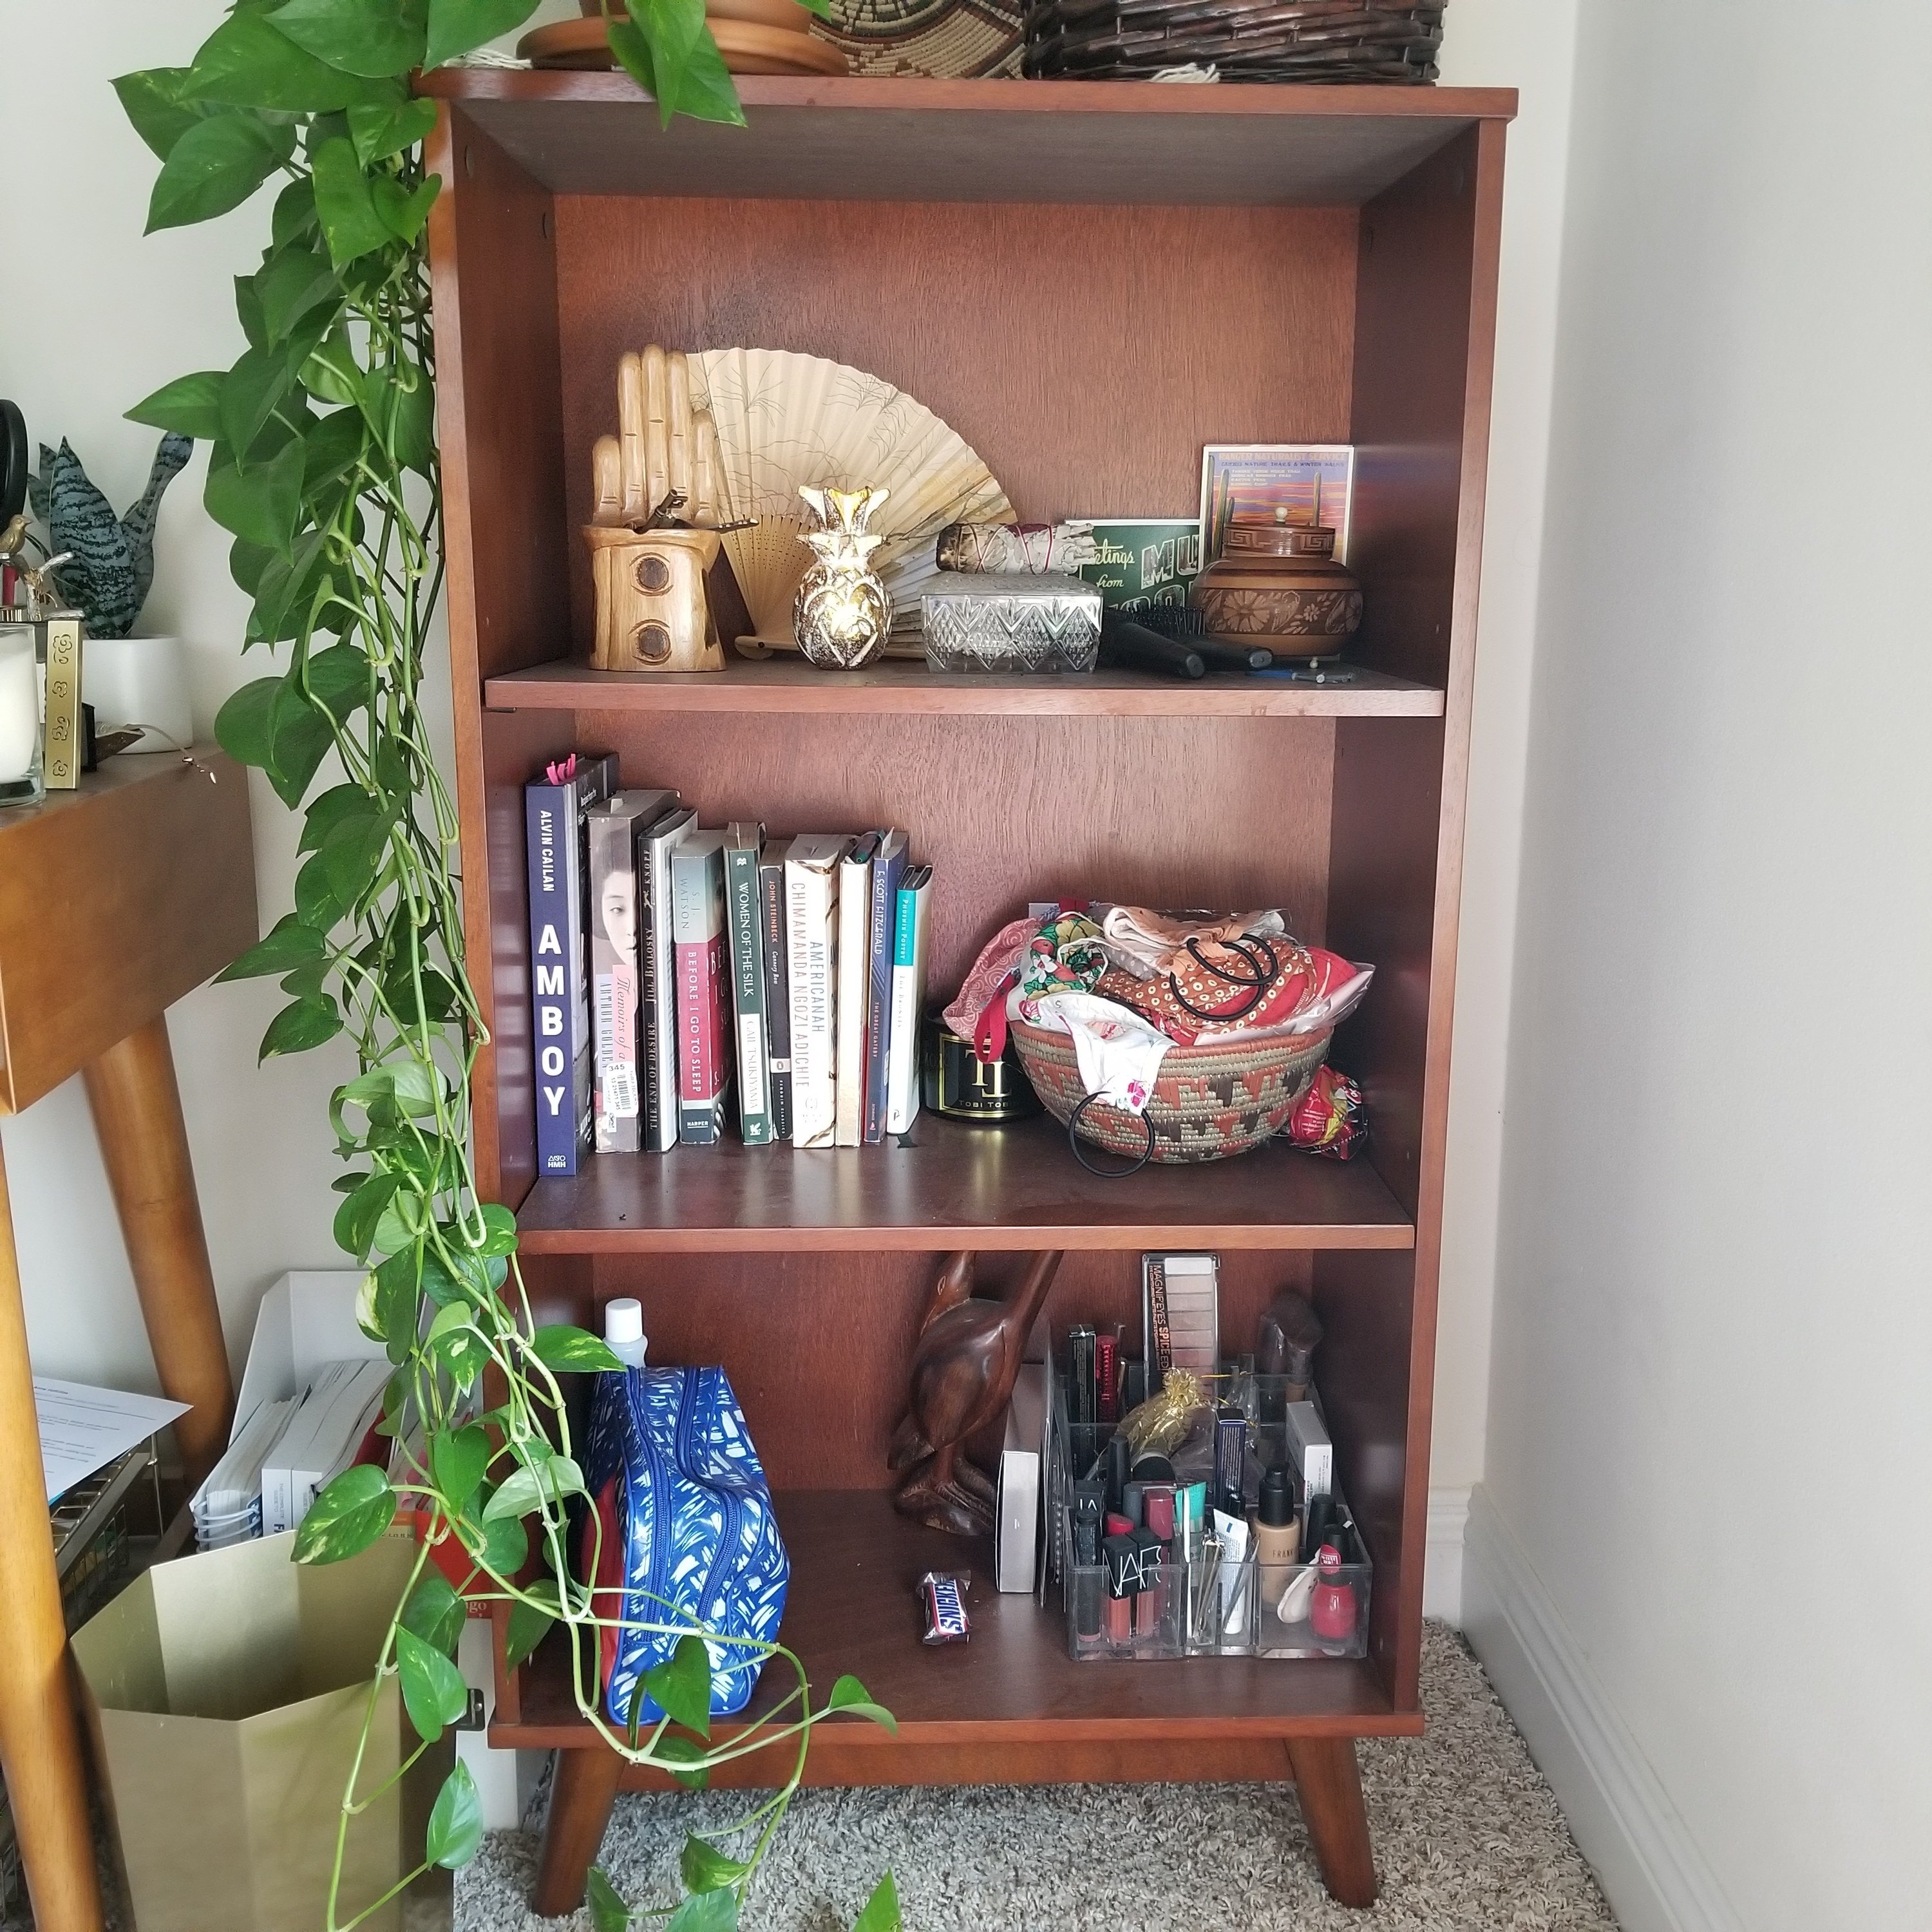 The shelf full of books and personal items